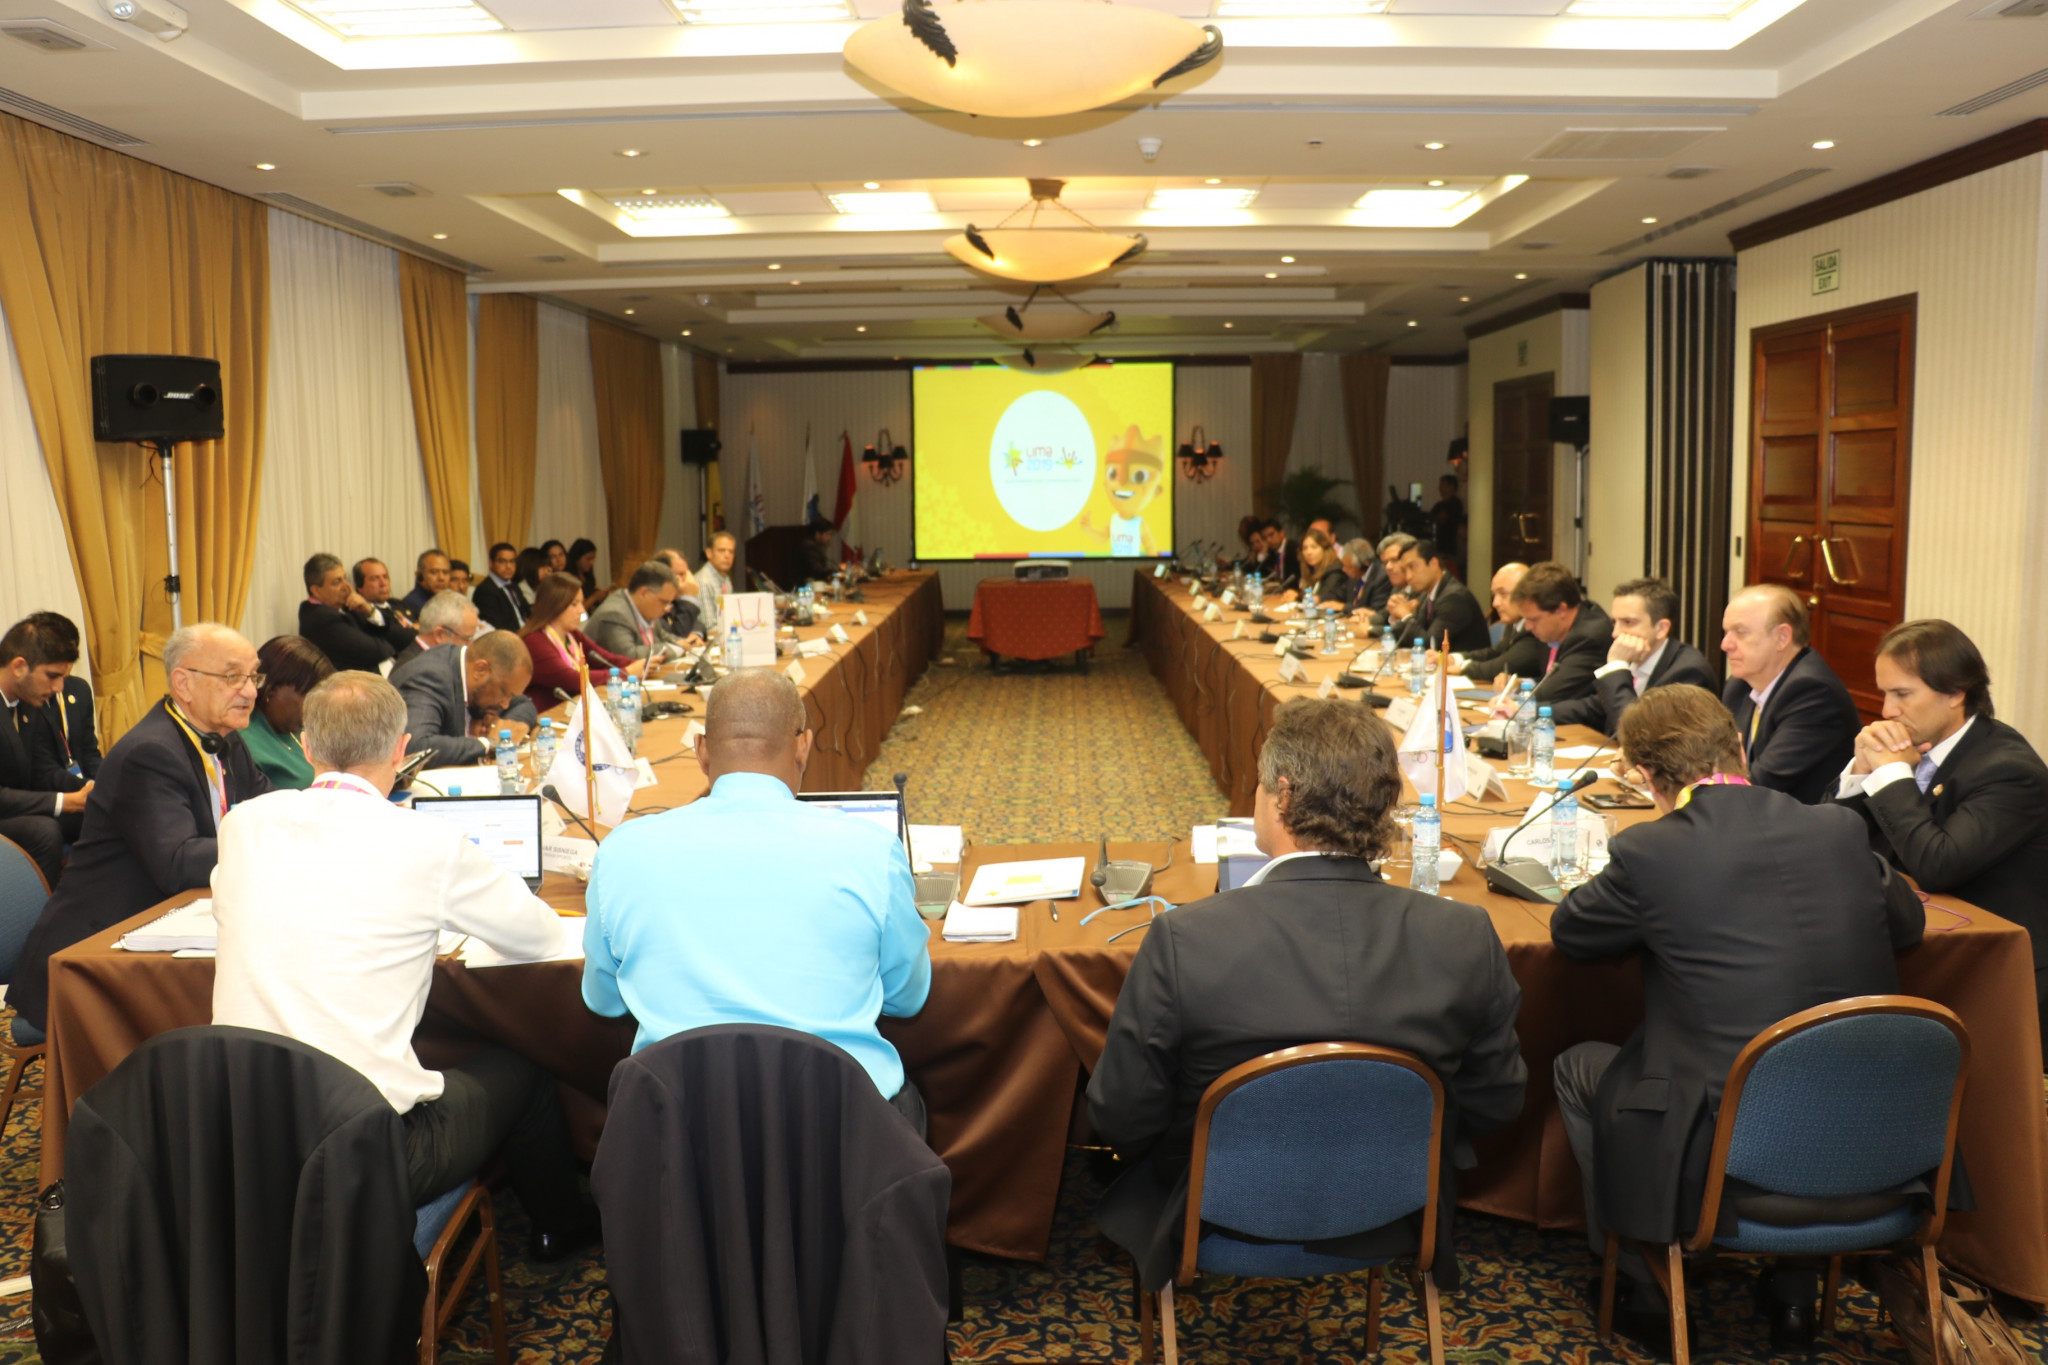 The sixth meeting of the Lima 2019 Coordination Commission took place in the Swissotel in the San Isidro district ©PanAmSports